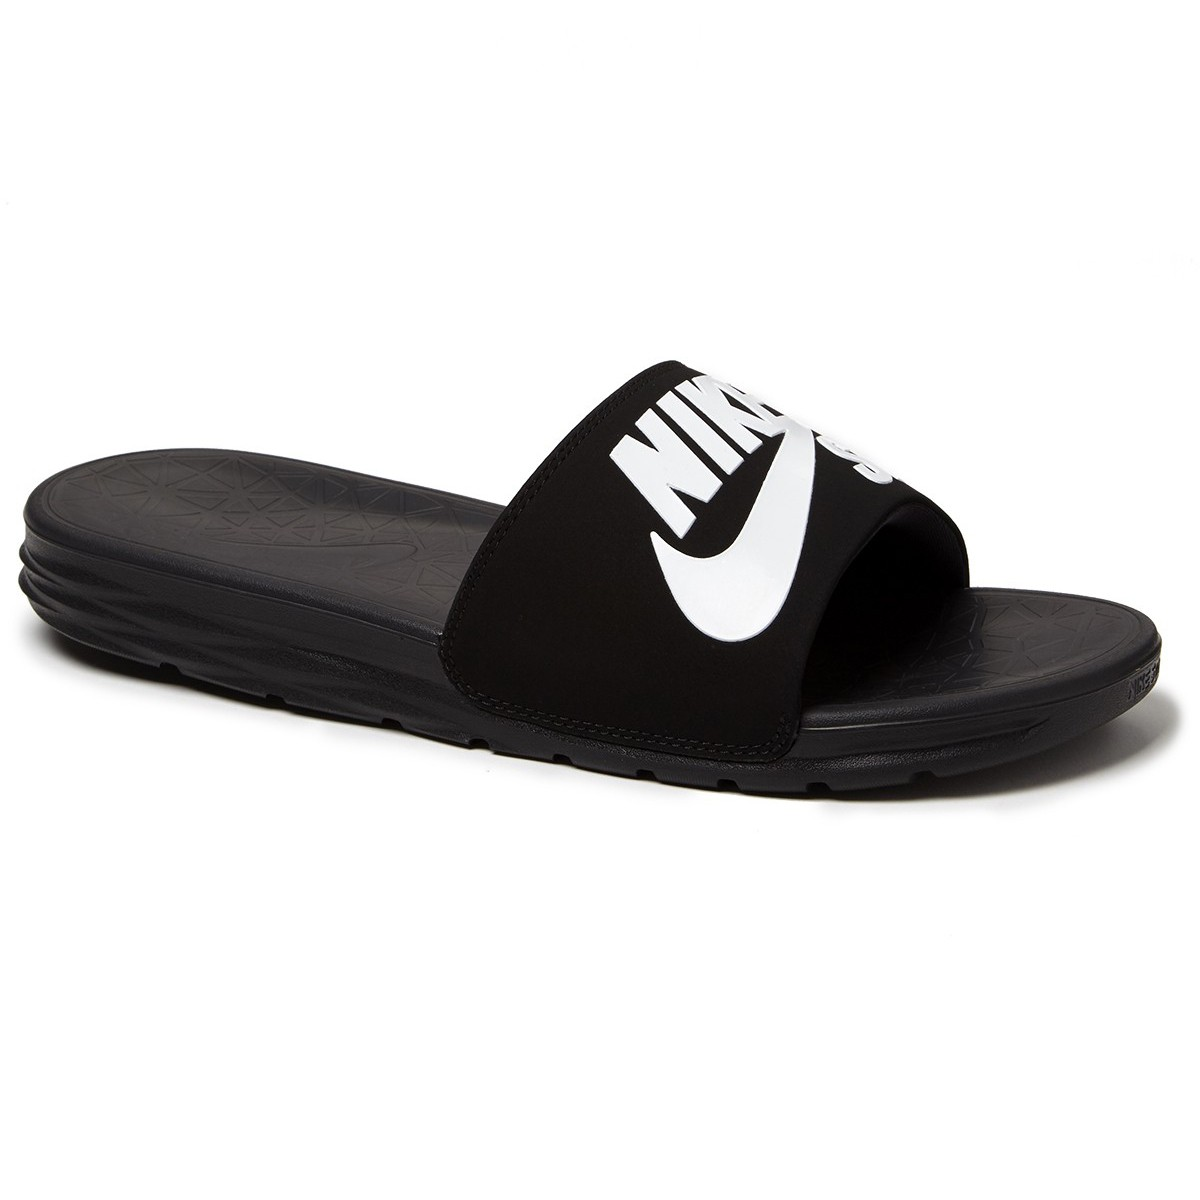 The Absolute Worst Black socks and sandals pictures